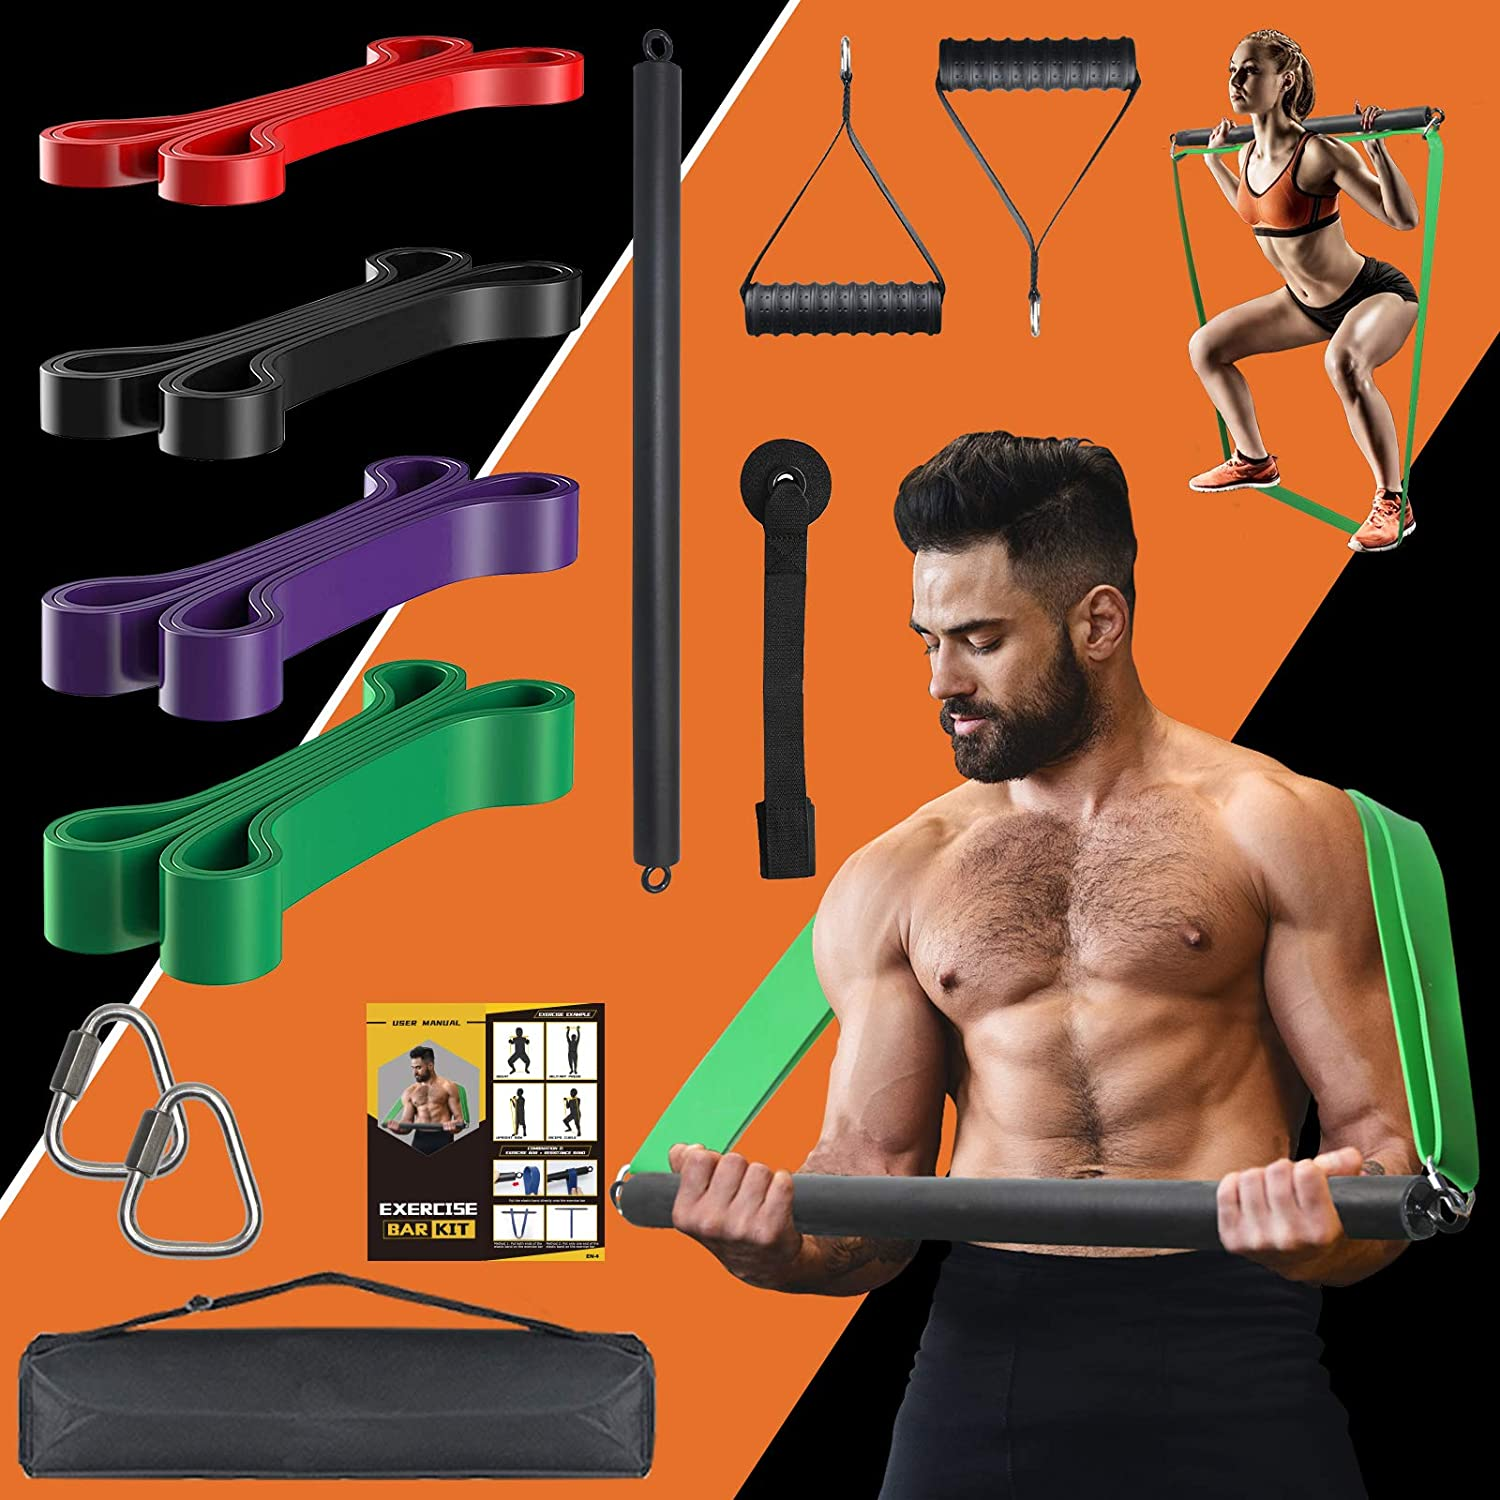 KIKIGOAL 300LBS Portable Resistance Bar 4 with Max Inexpensive 44% OFF Levels